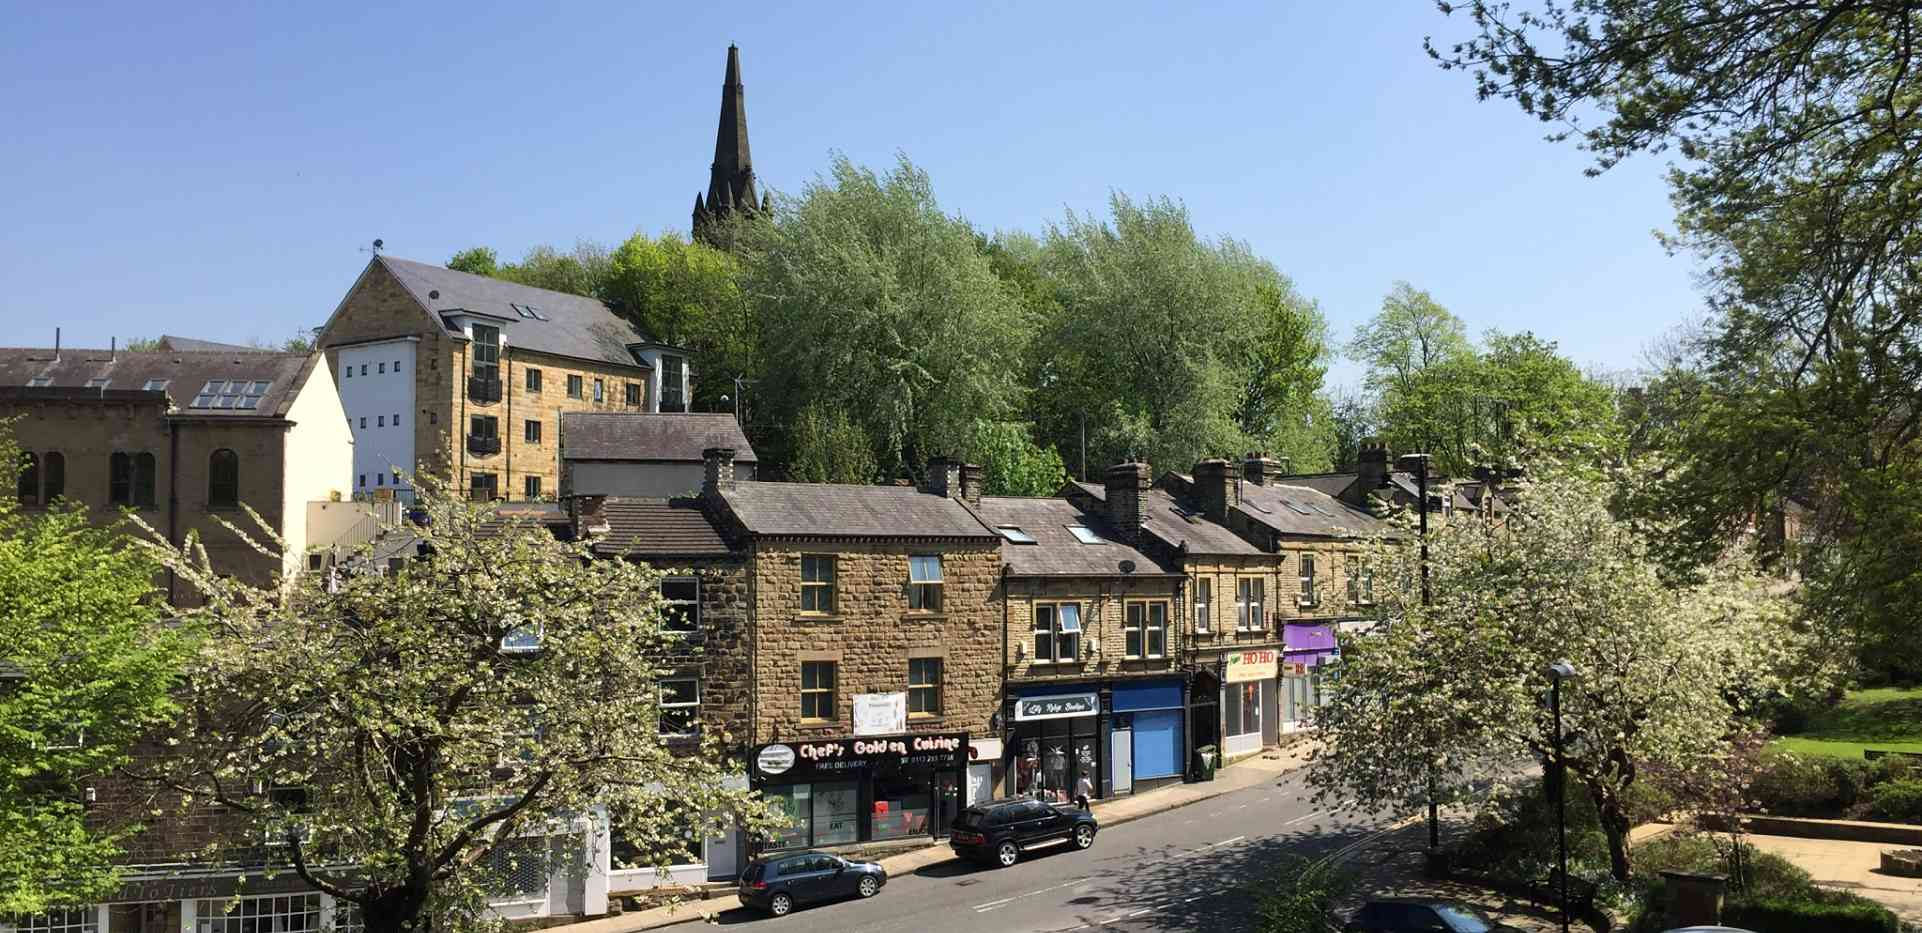 Conveyancing - Houses in Morley near Leeds West Yorkshire